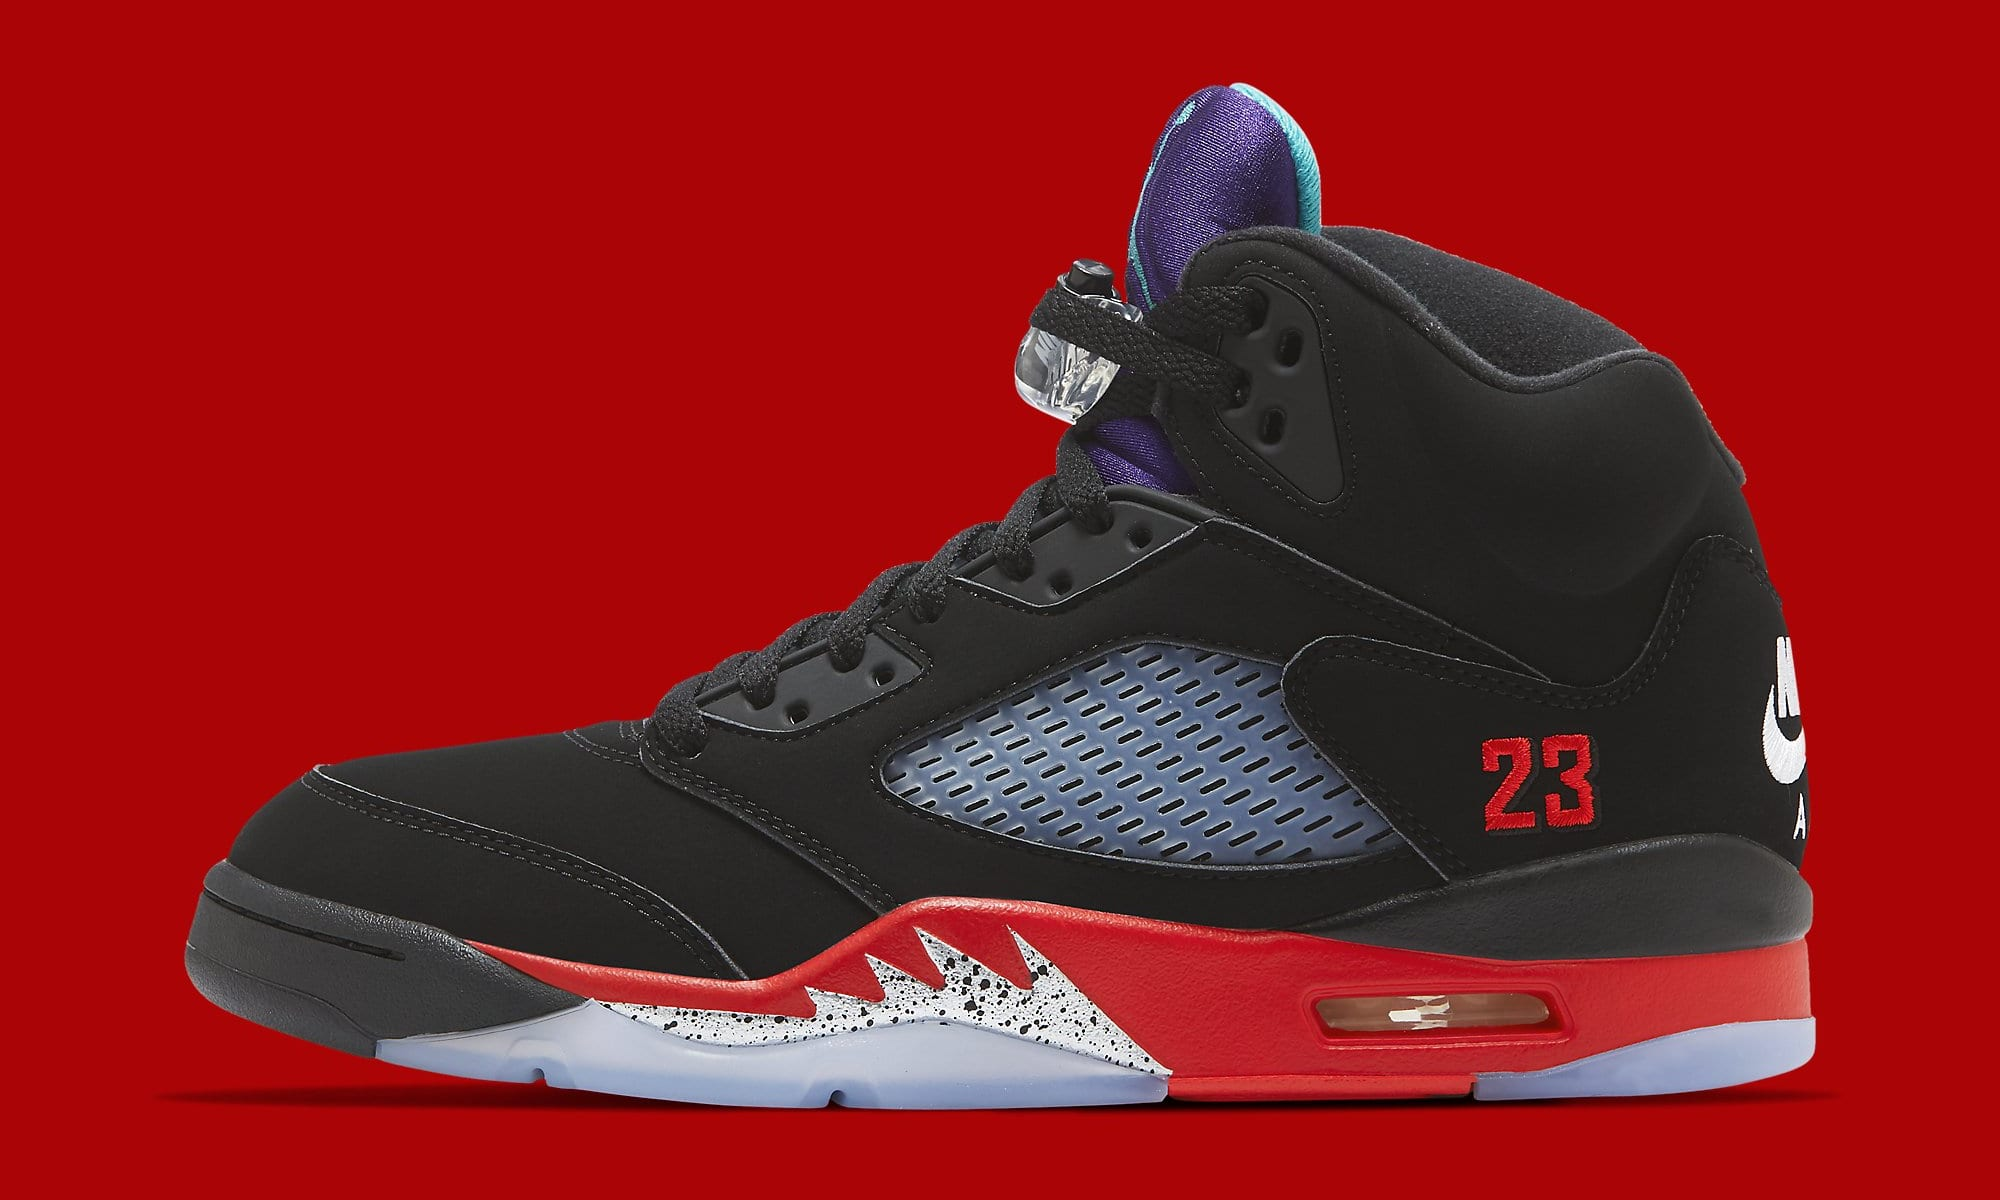 Air Jordan 5 Retro 'Top 3' CZ1786-001 Lateral